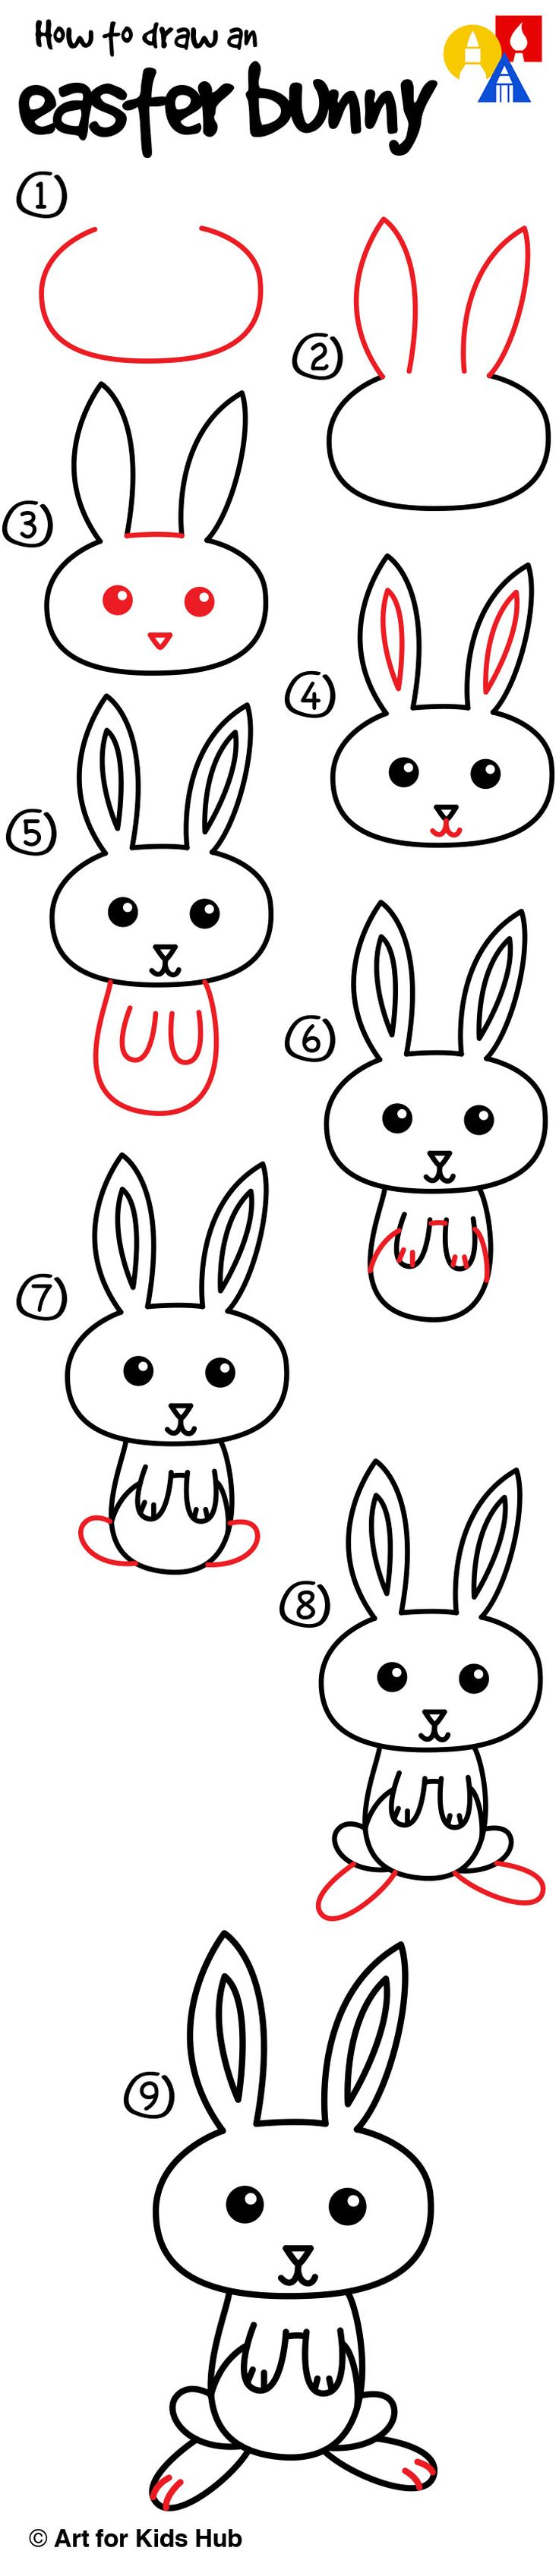 How To Draw A Cartoon Easter Bunny  Art For Kids Hub